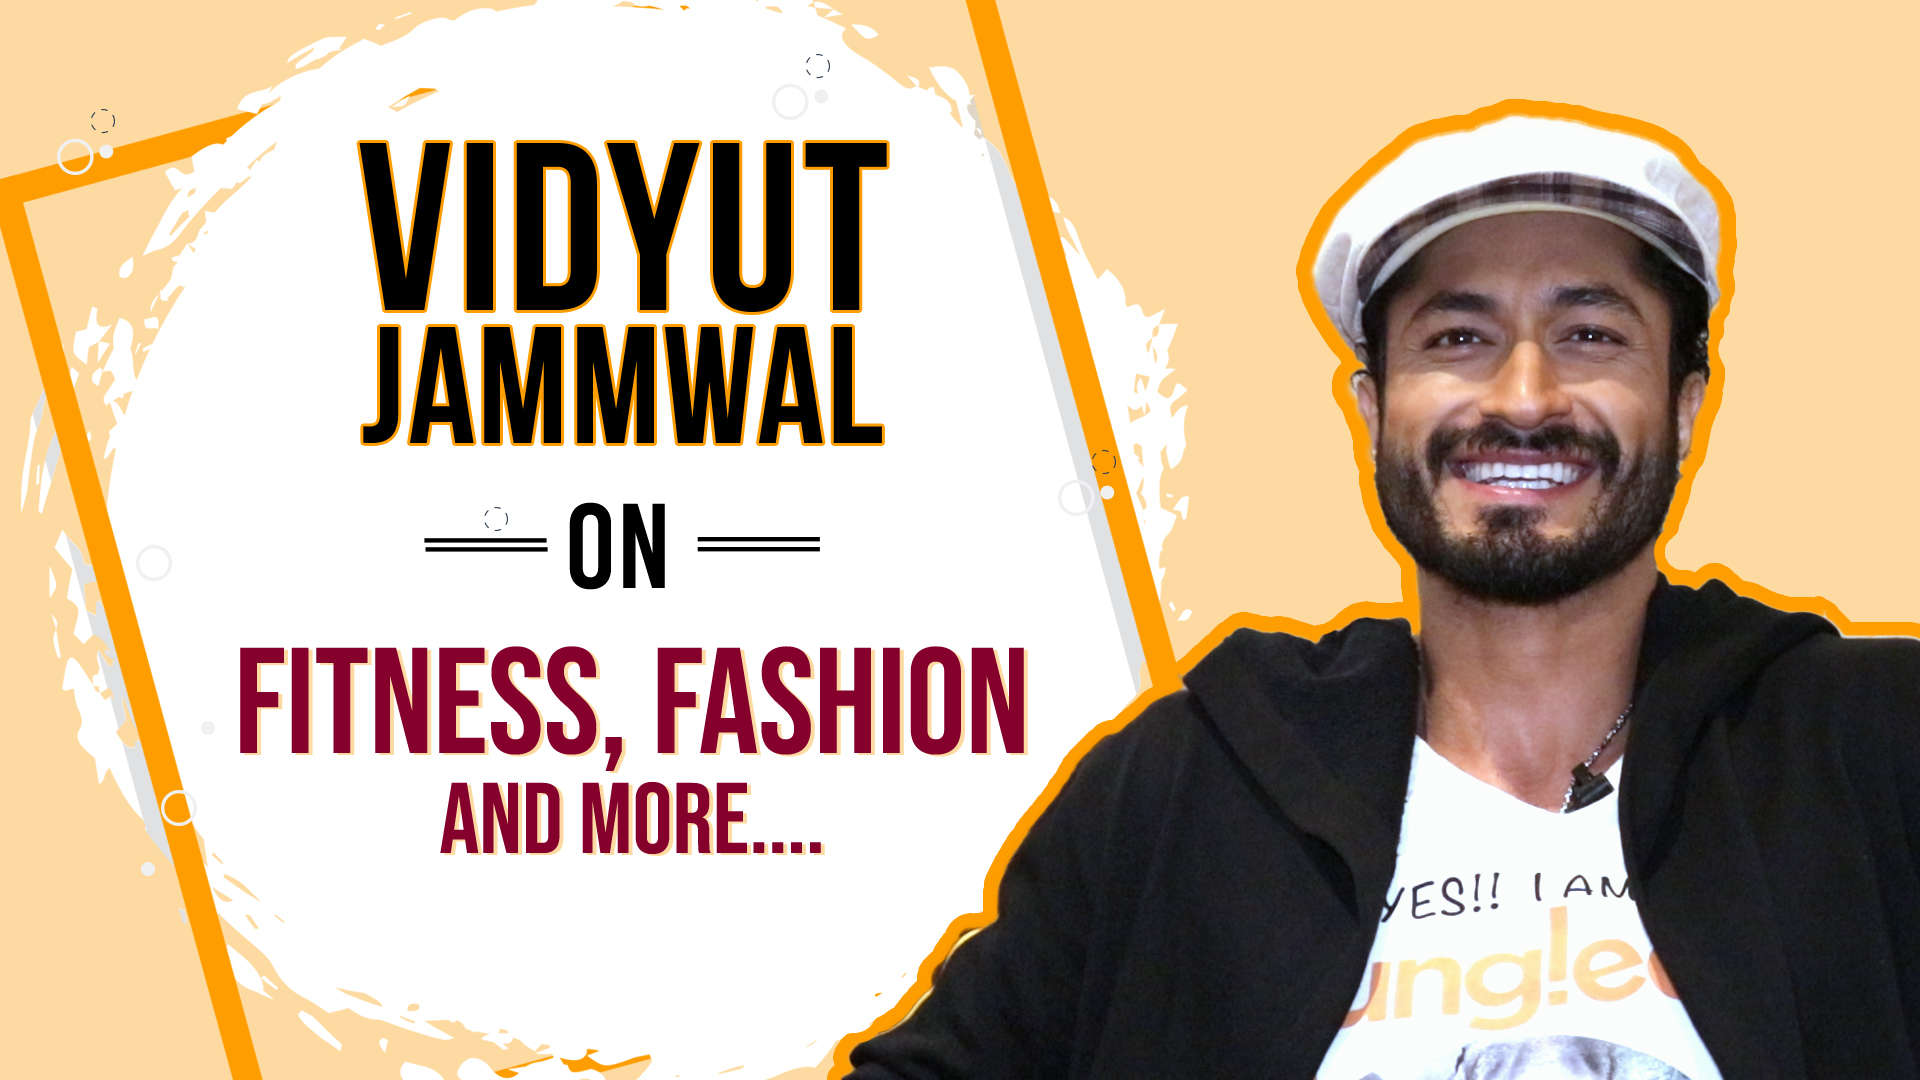 EXCLUSIVE |  Junglee star Vidyut Jammwal gets candid about fitness, fashion and more